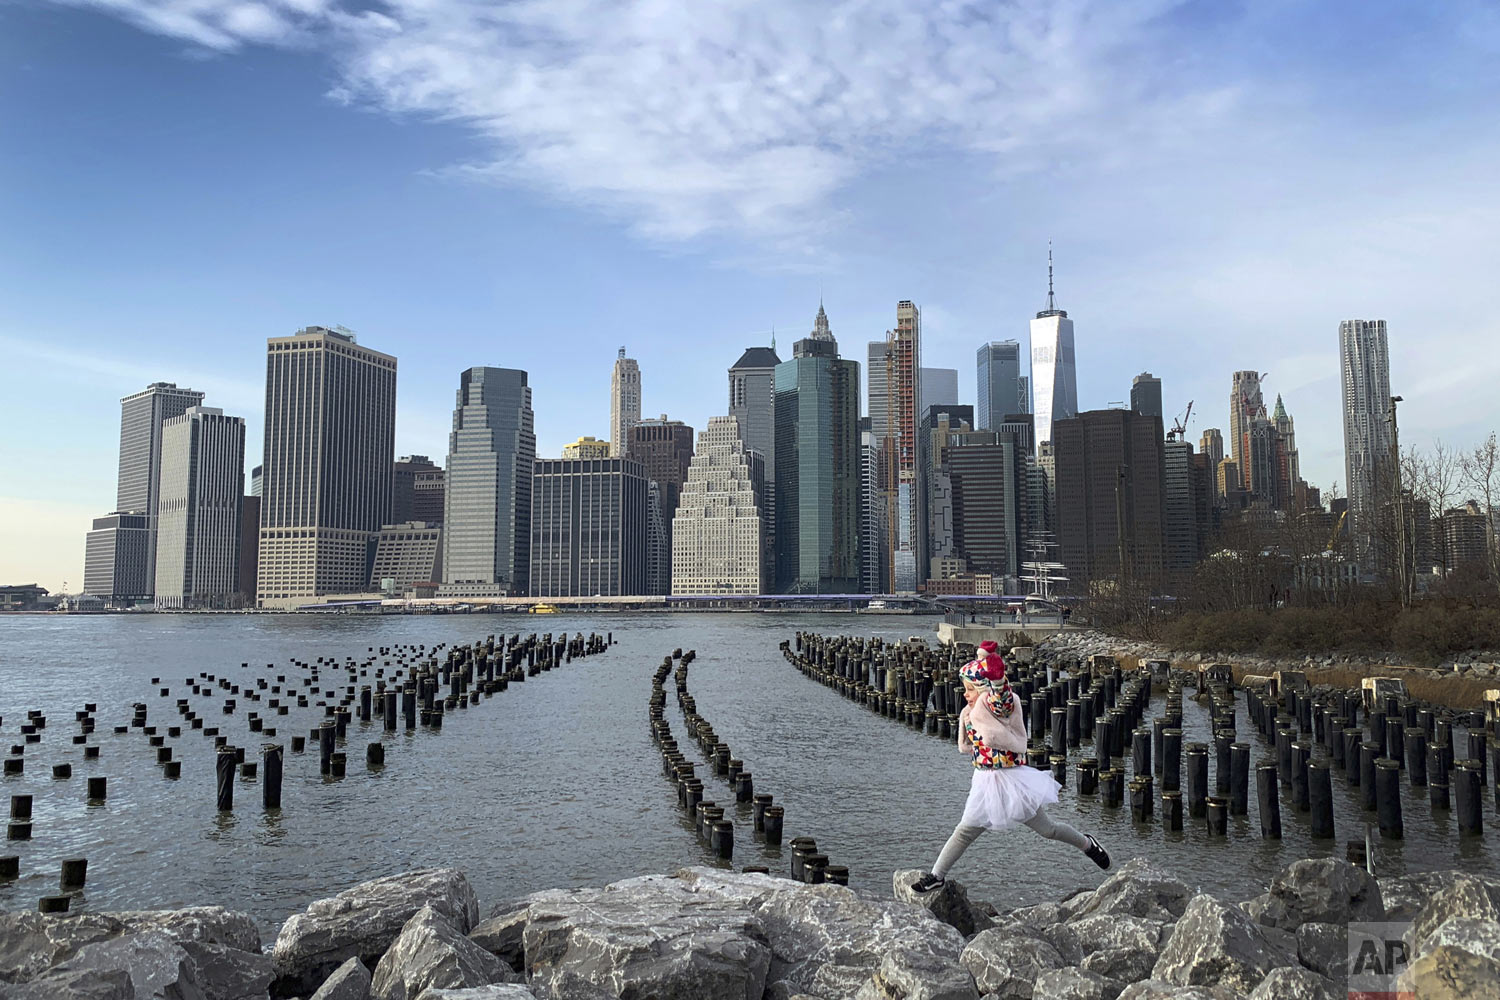 With downtown Manhattan in the background, a girl leaps across boulders forming a breakwater along the Brooklyn Bridge Park on Thursday Dec. 27, 2018, in the Brooklyn borough of New York. (AP Photo/Wong Maye-E)